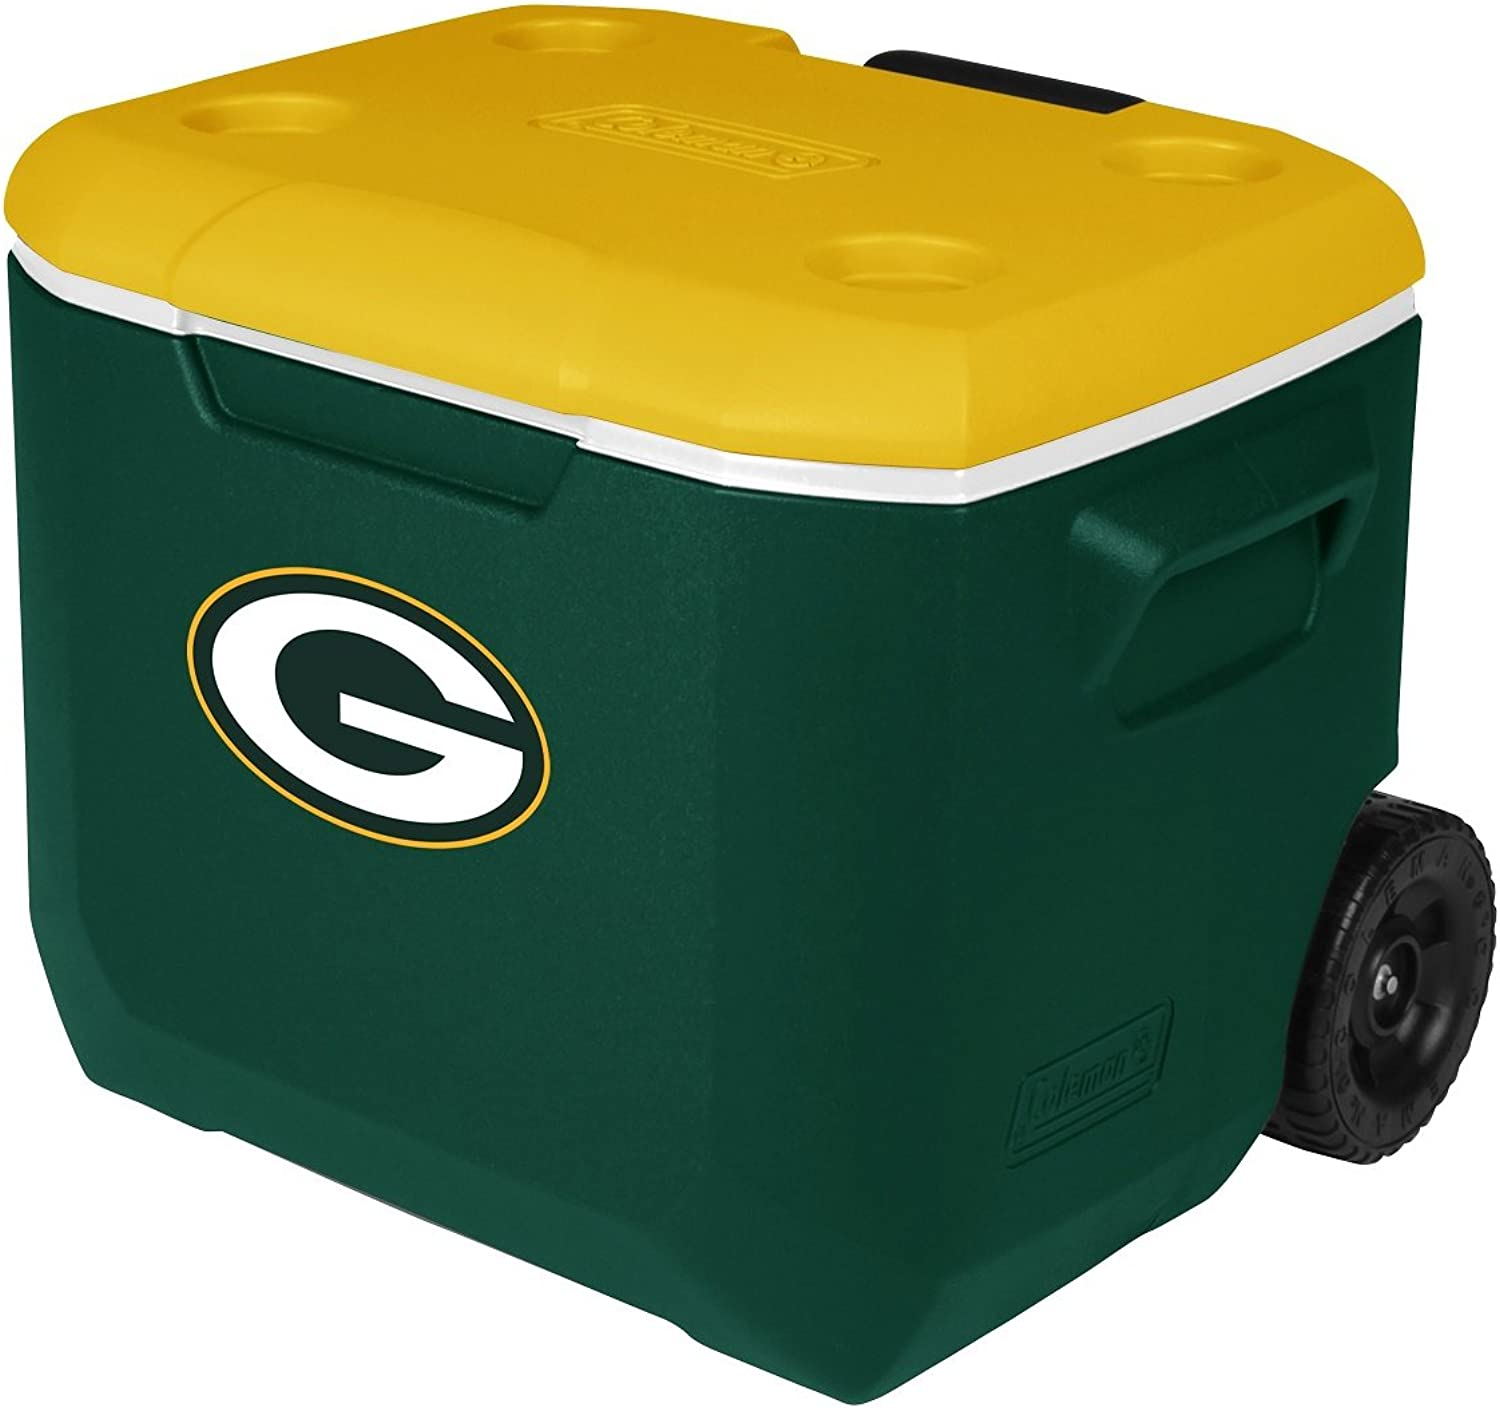 Coleman Company NFL Green Bay Packers Performance Cooler, 60 quart, Green Yellow